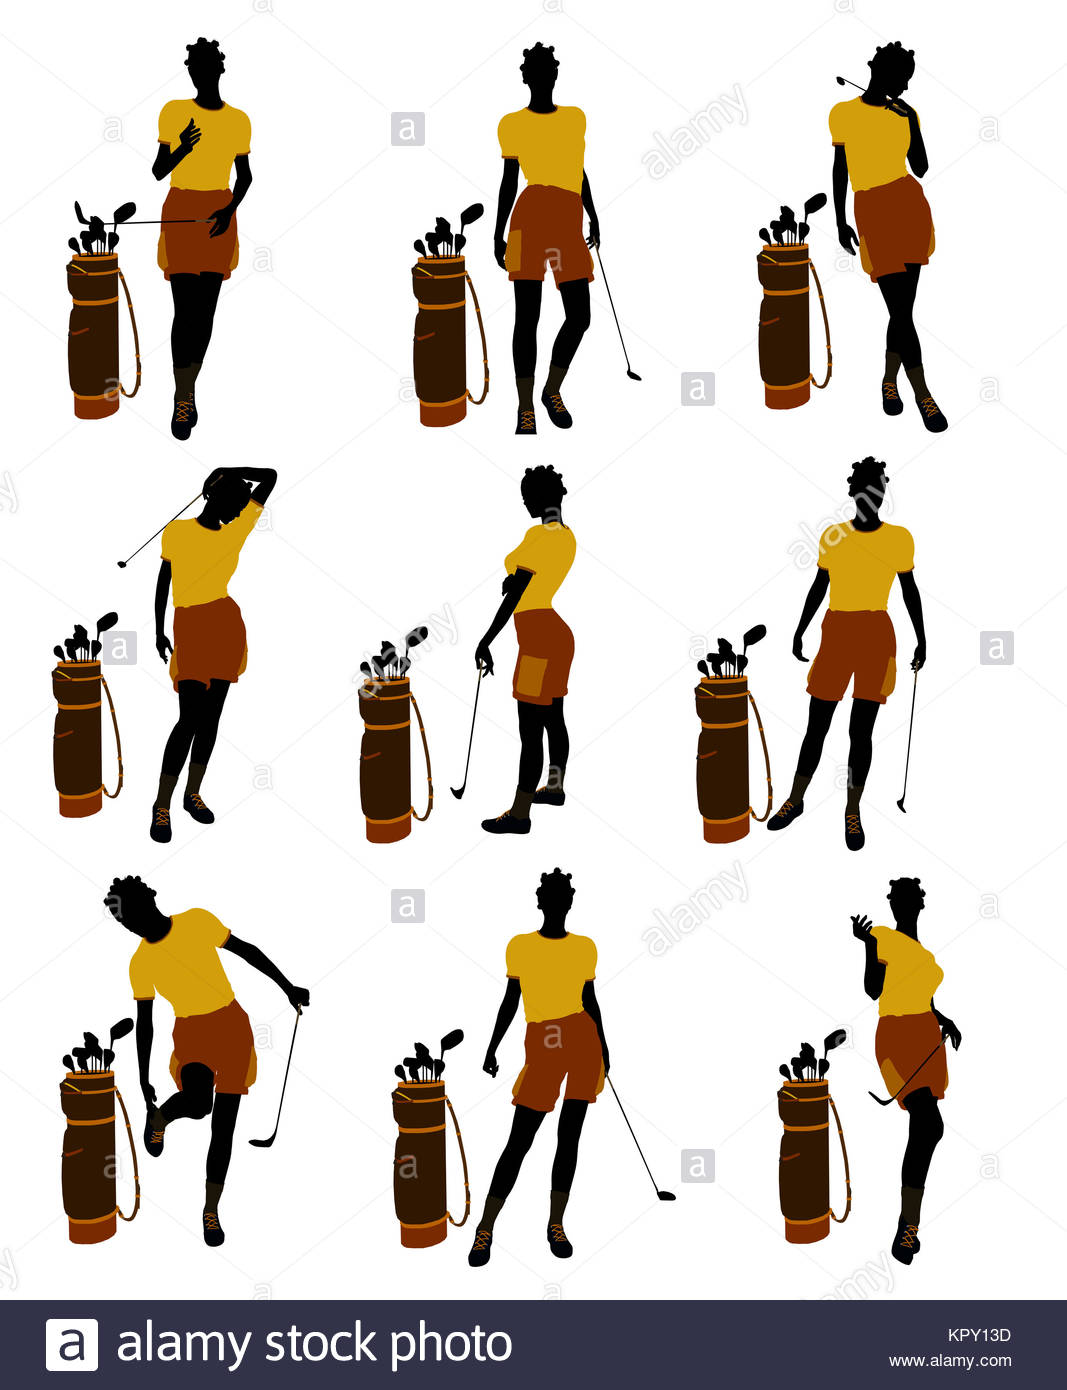 1067x1390 African American Female Golf Player Art Illustration Silhouette